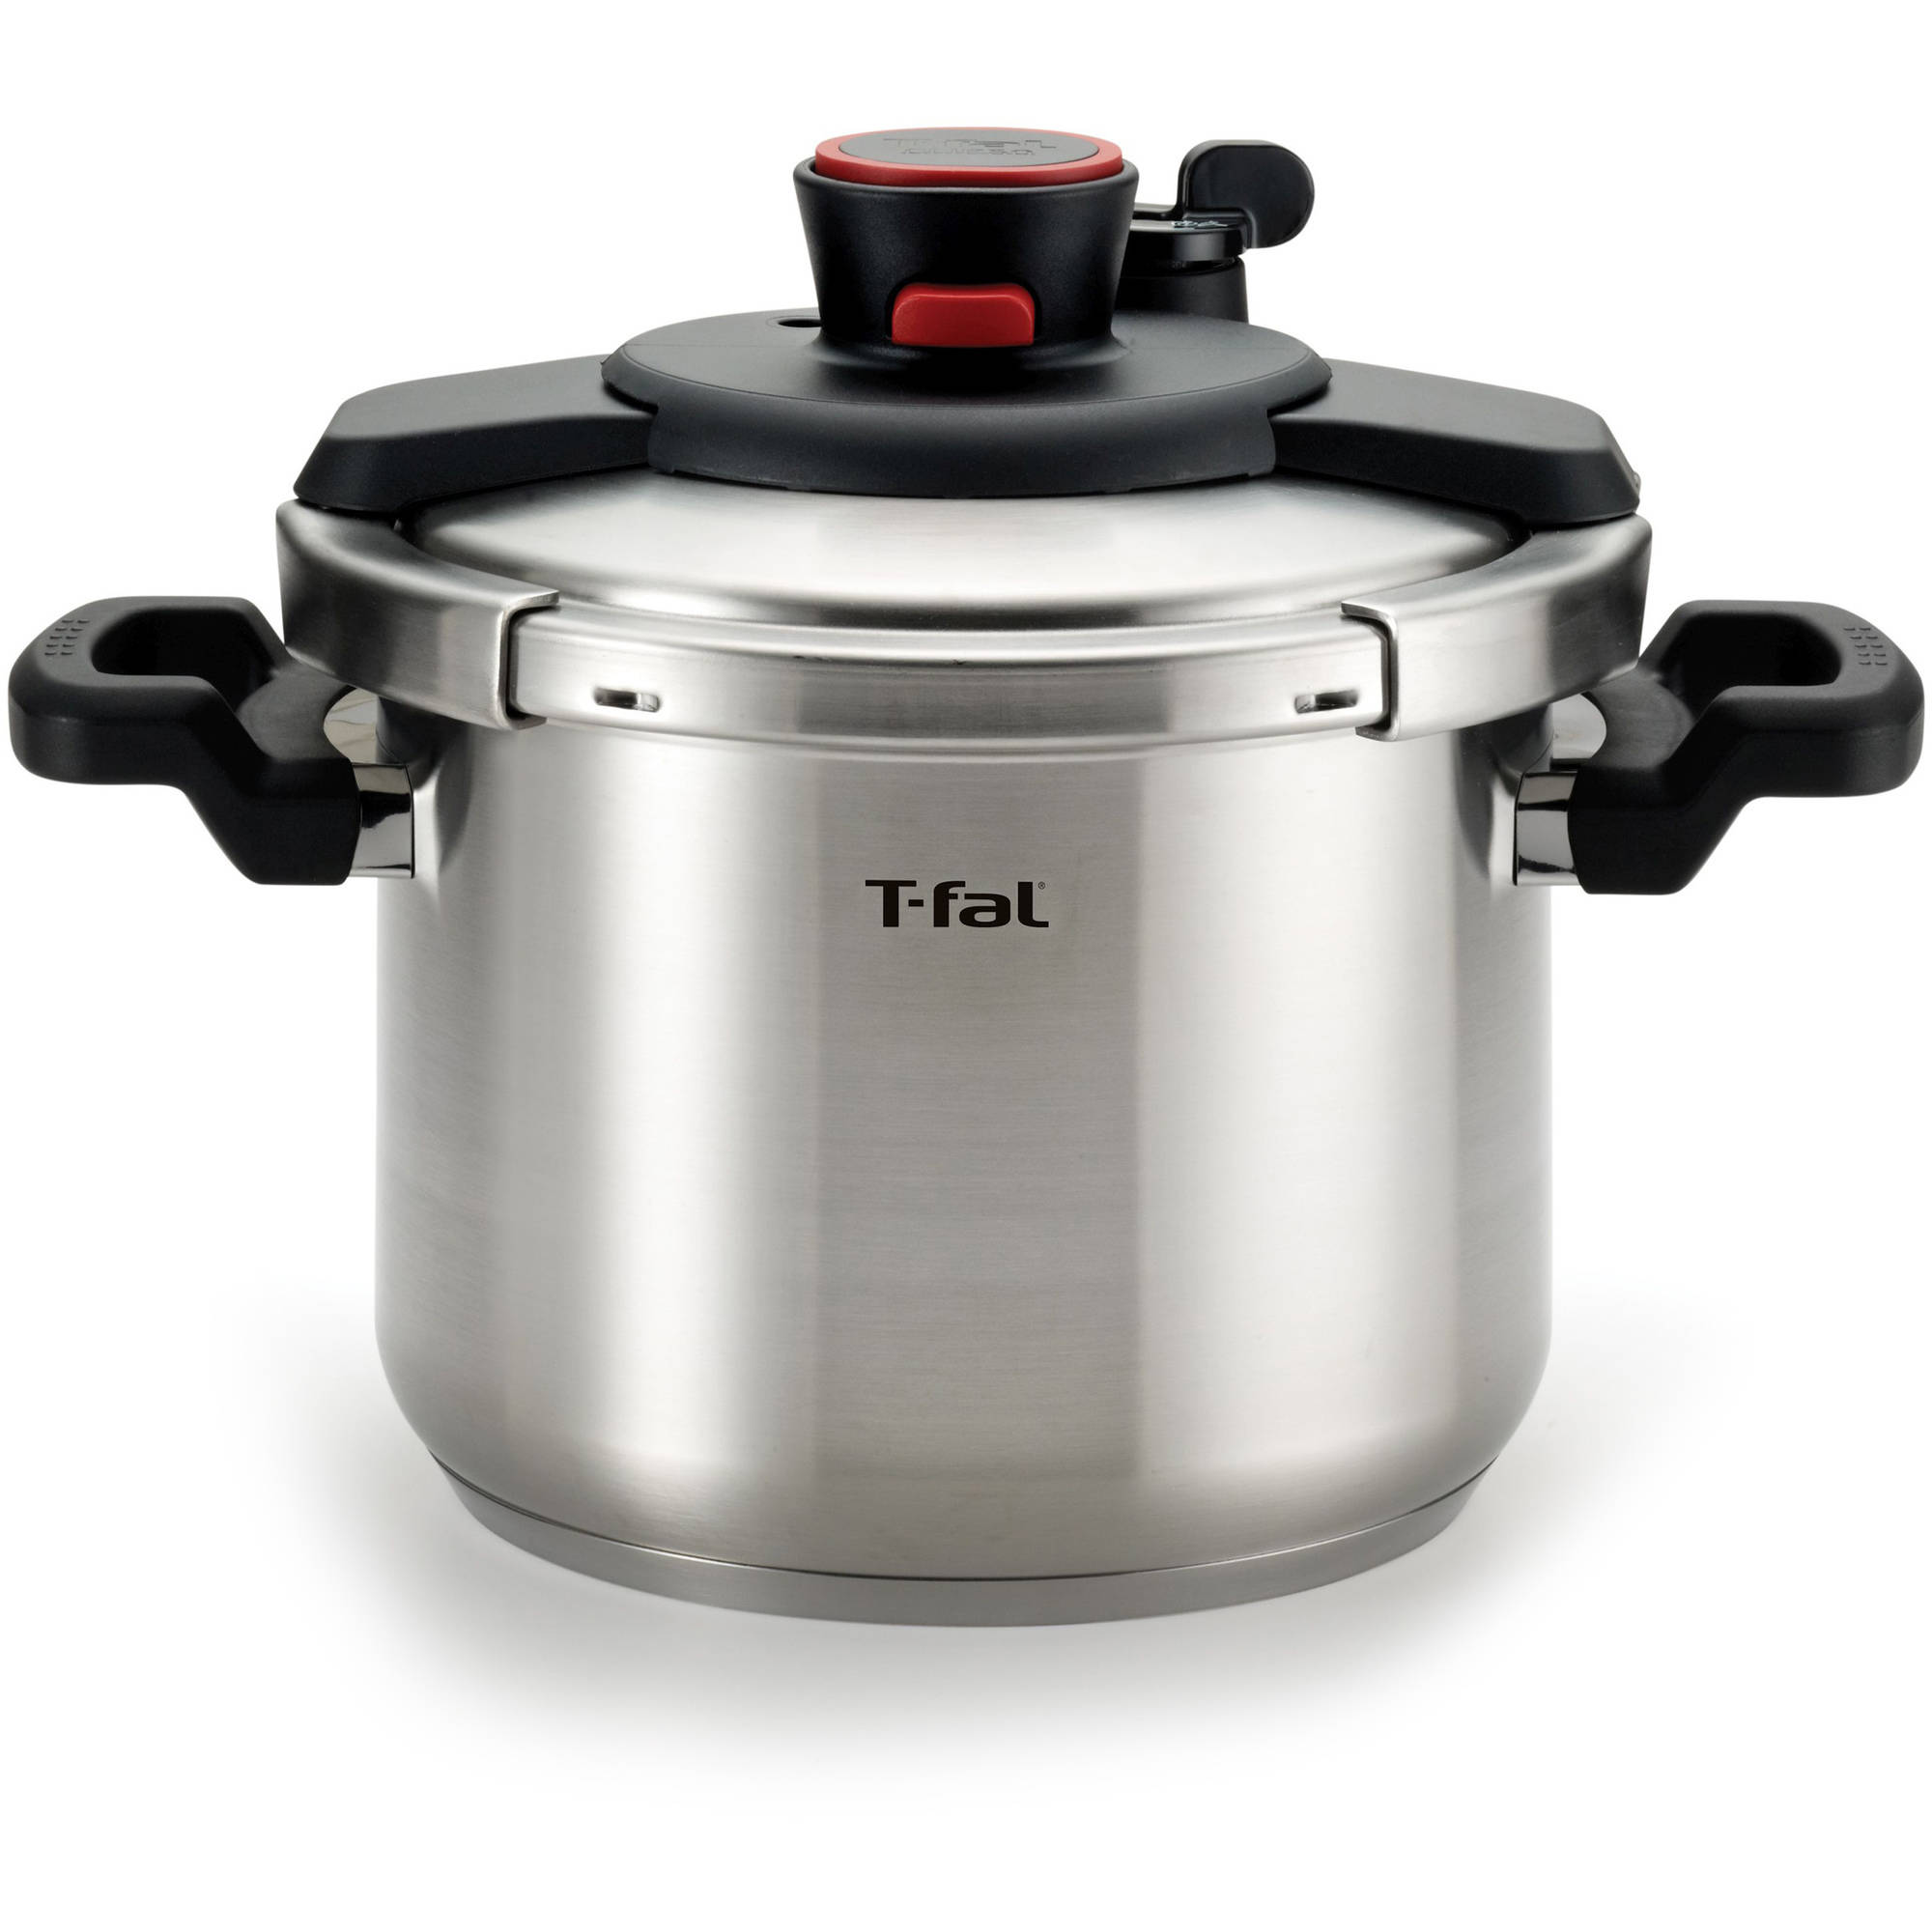 T-fal Clipso Stainless Steel 6.3-Qt Pressure Cooker